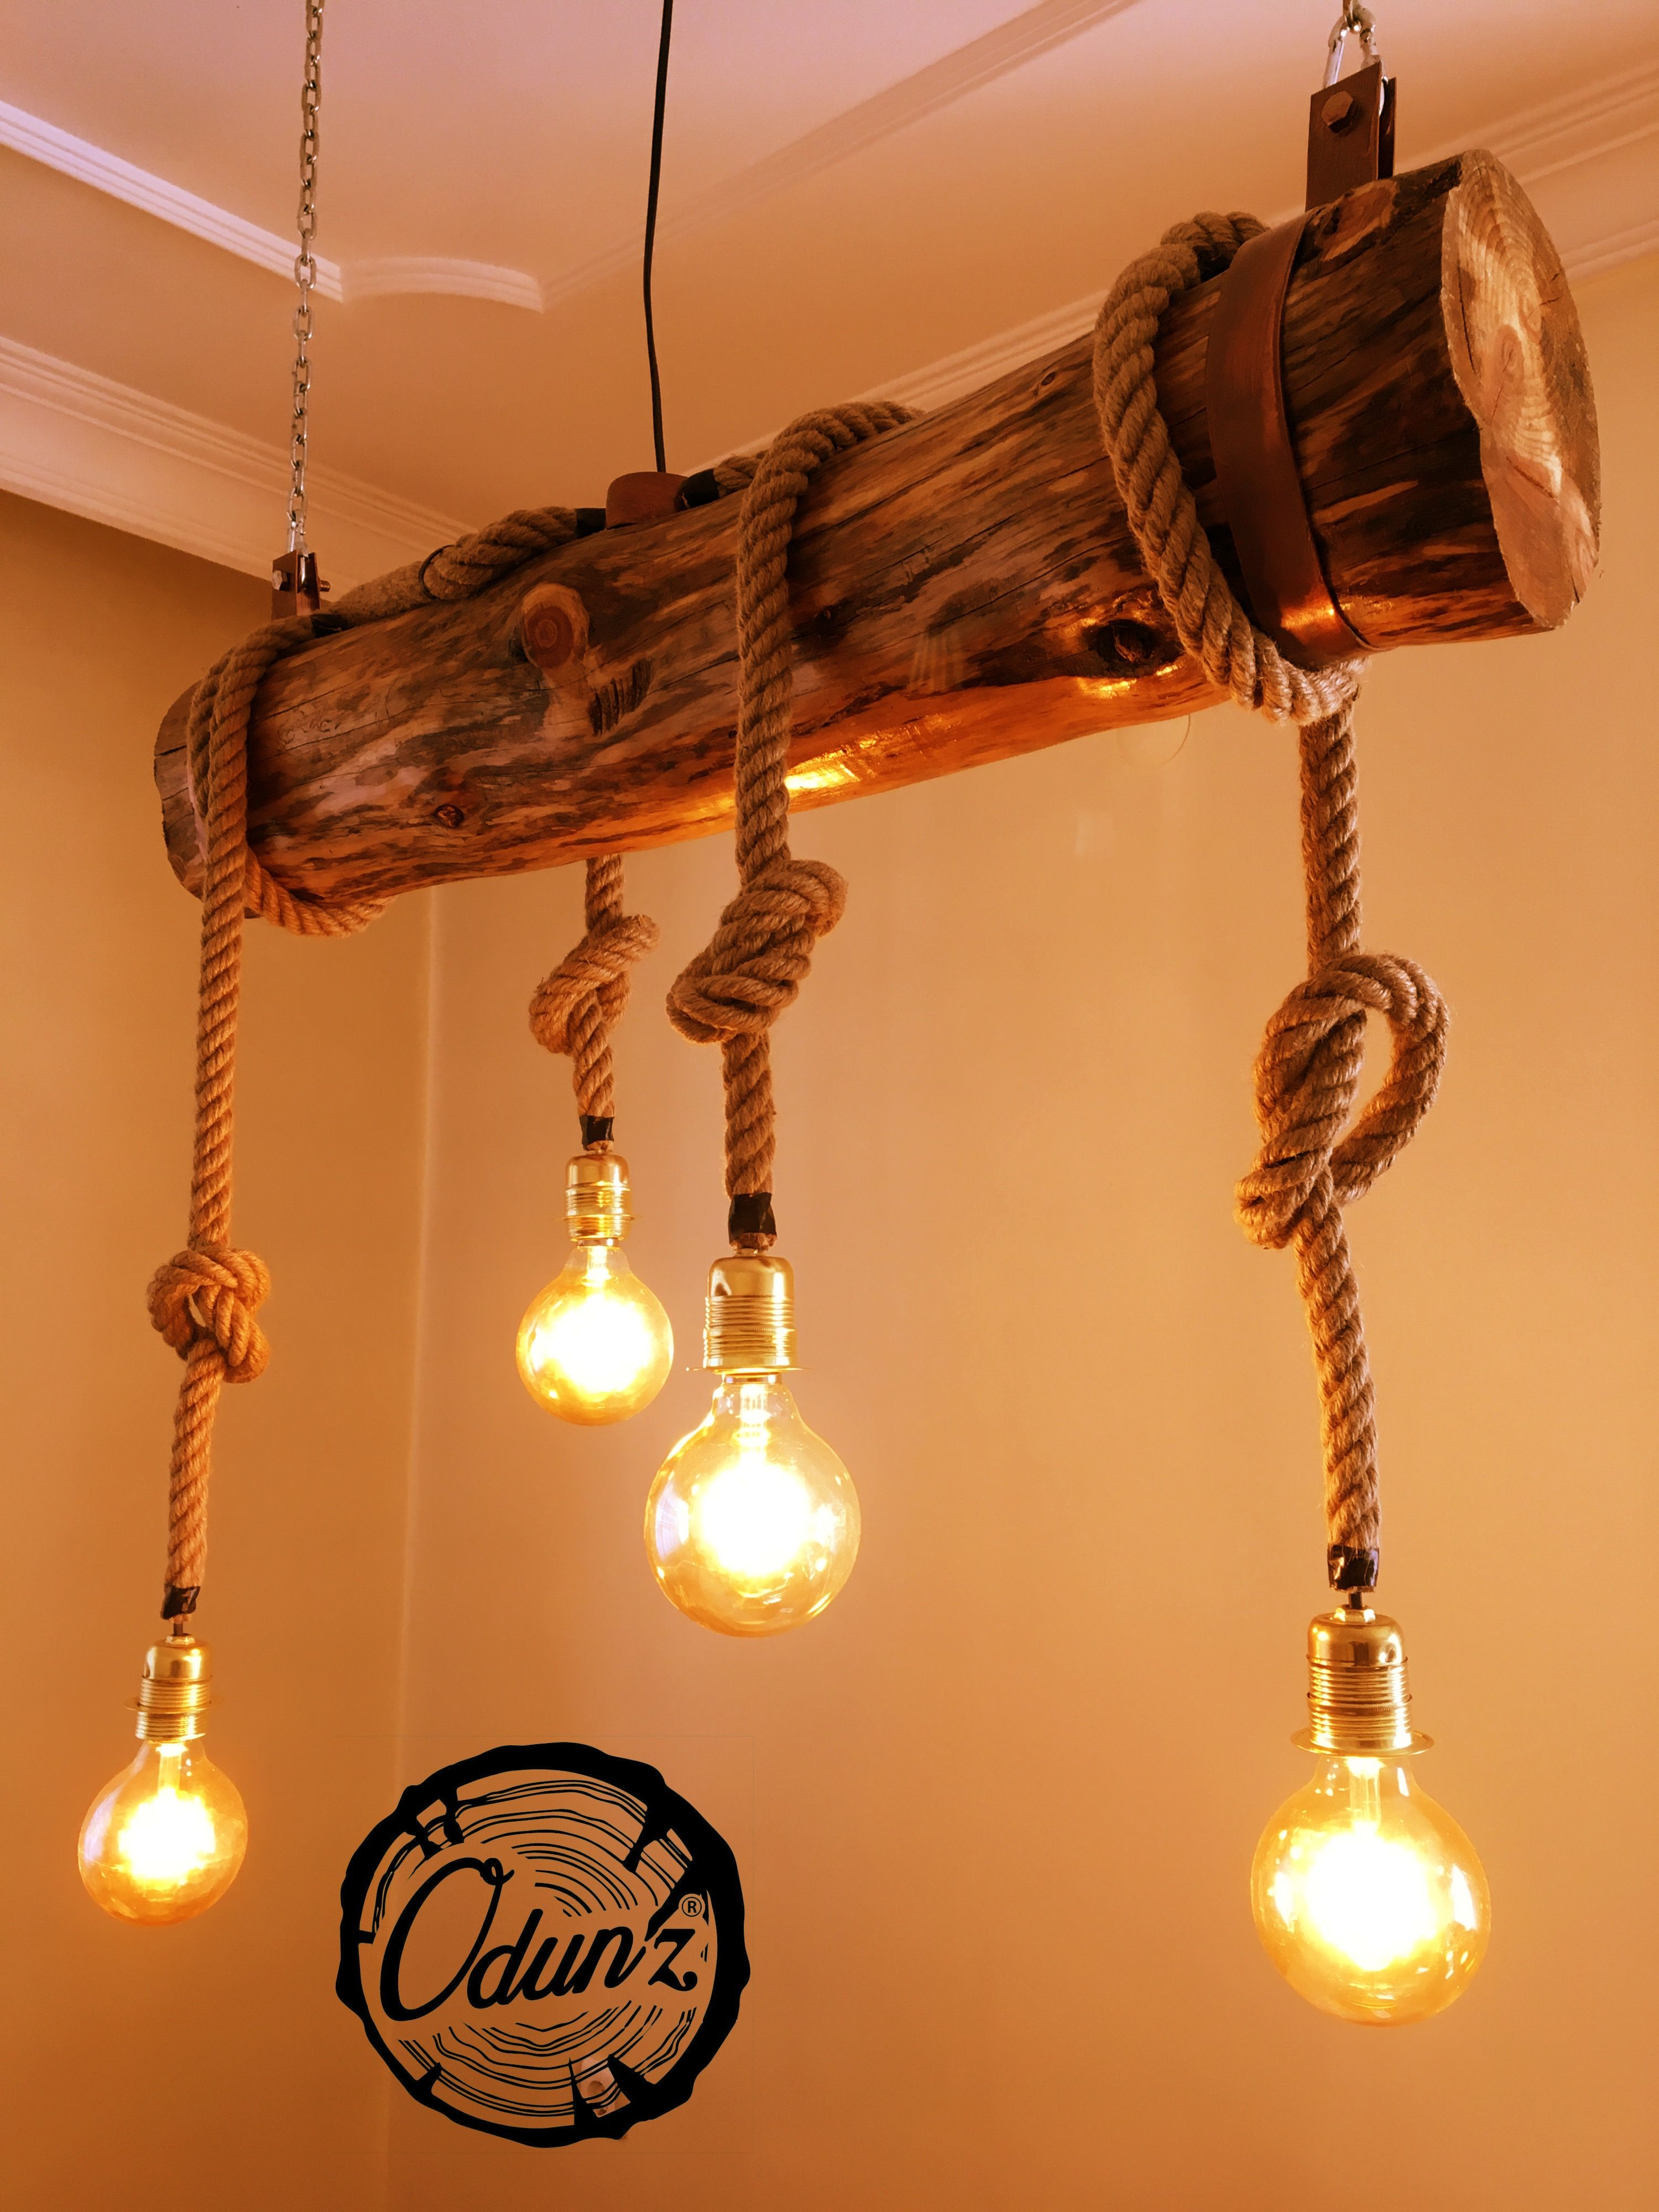 Rope lights l i g h t s pinterest rope lighting lights and rope lights aloadofball Image collections